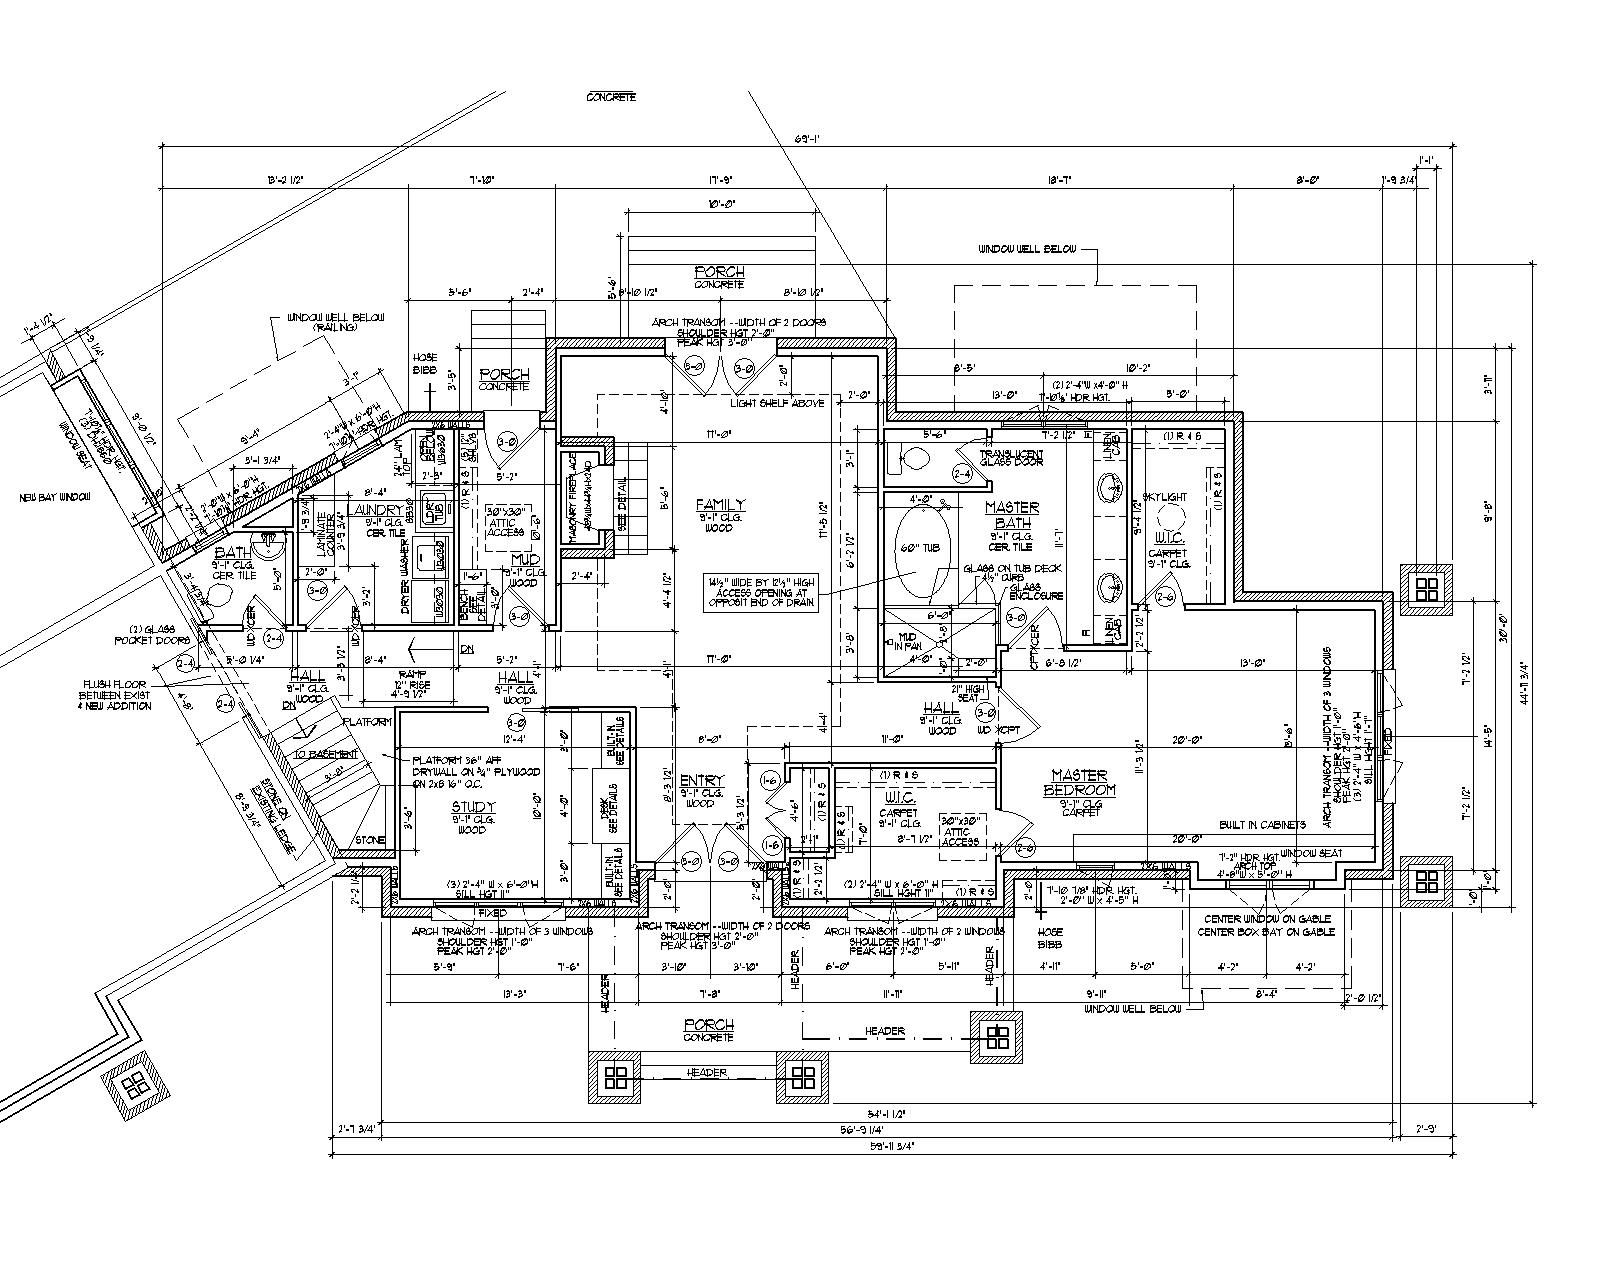 2d autocad house plans residential building drawings cad for Floor plan drafting services